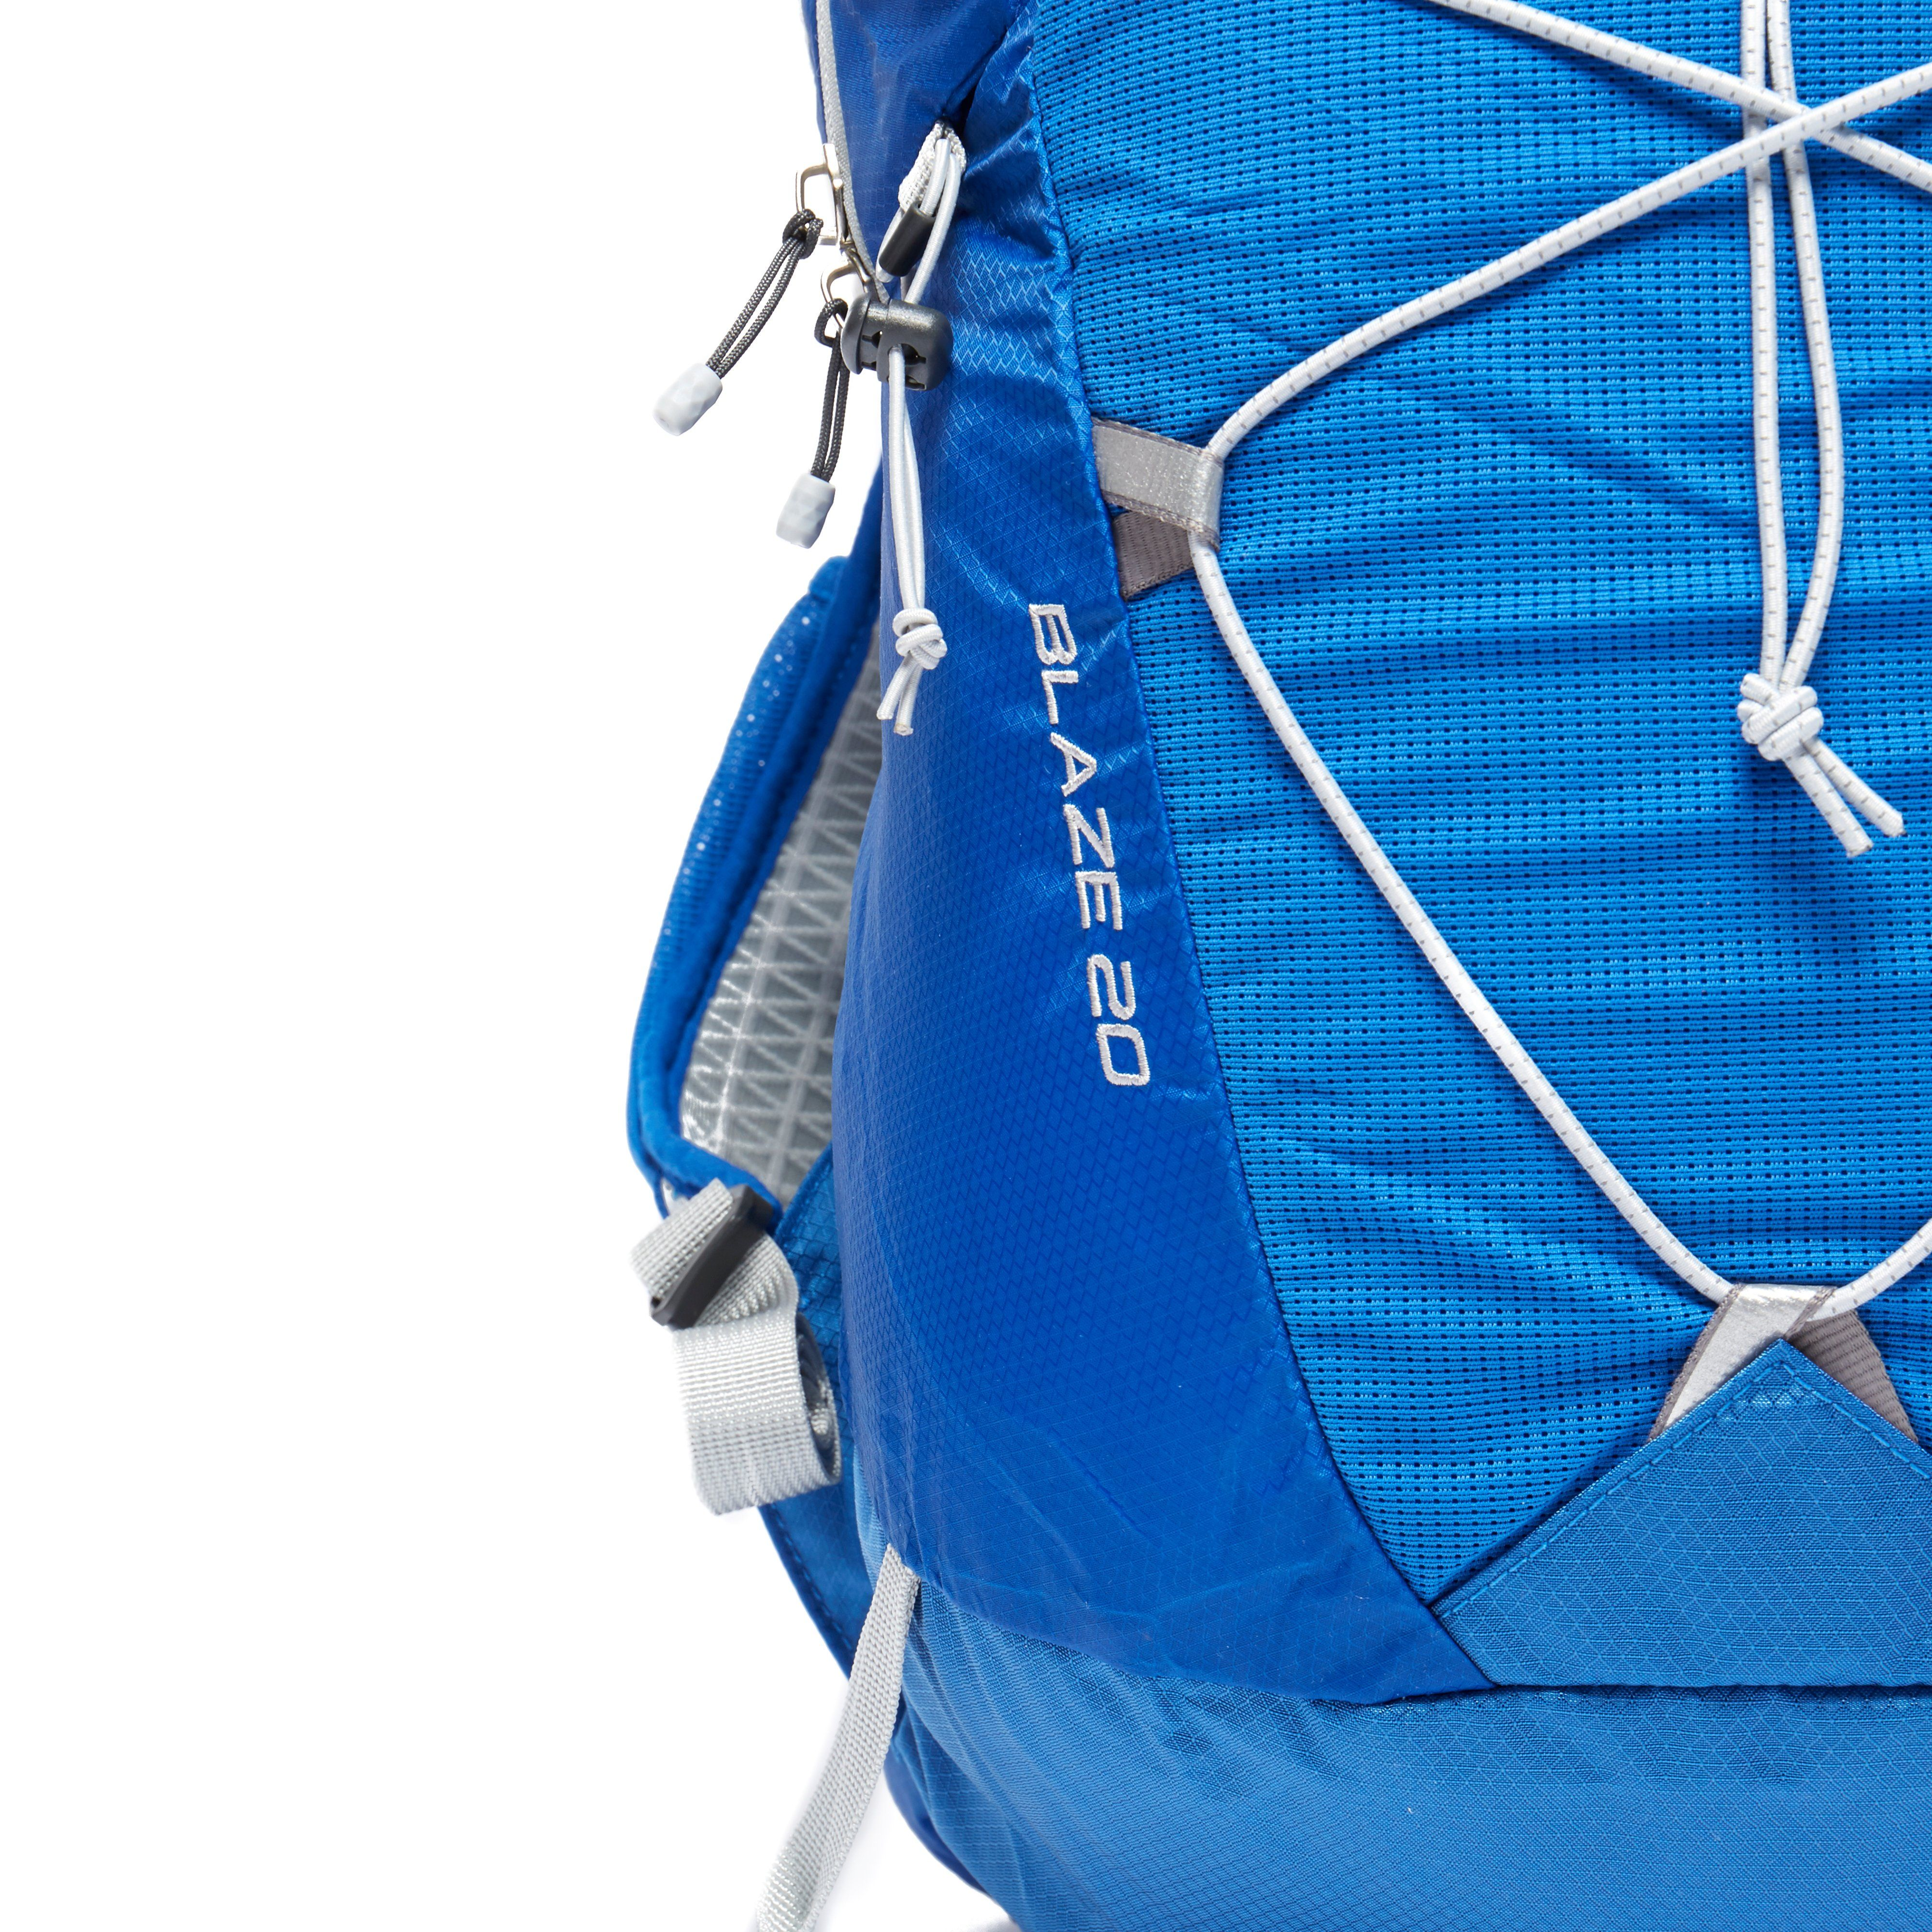 The North Face Blaze 20L Backpack